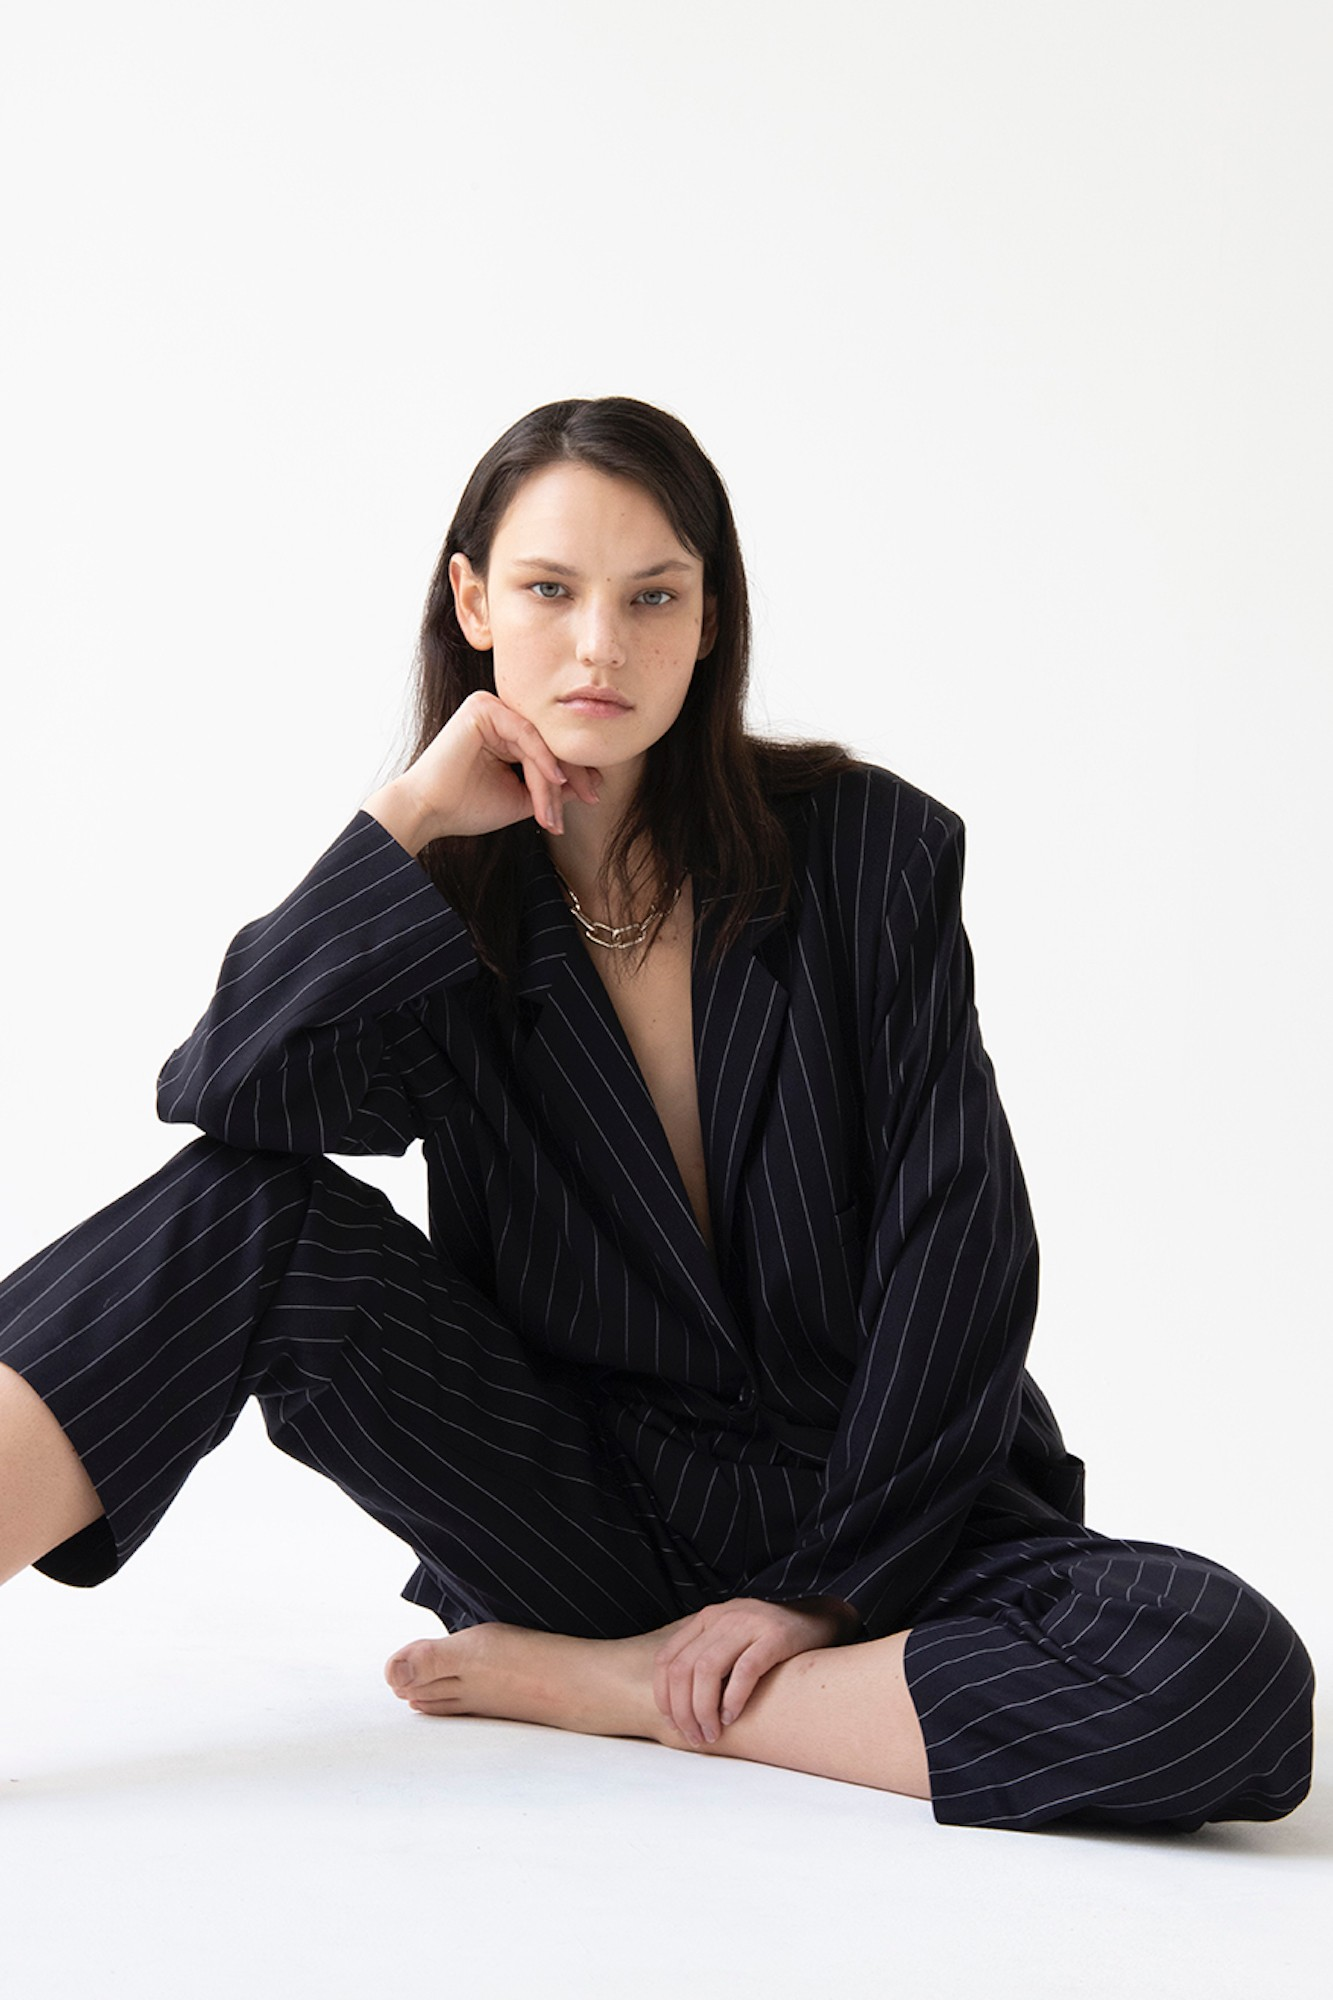 The Frankie Shop Instagram Fashion Label Founder Interview Fall/Winter 2020 Collection Net-A-Porter